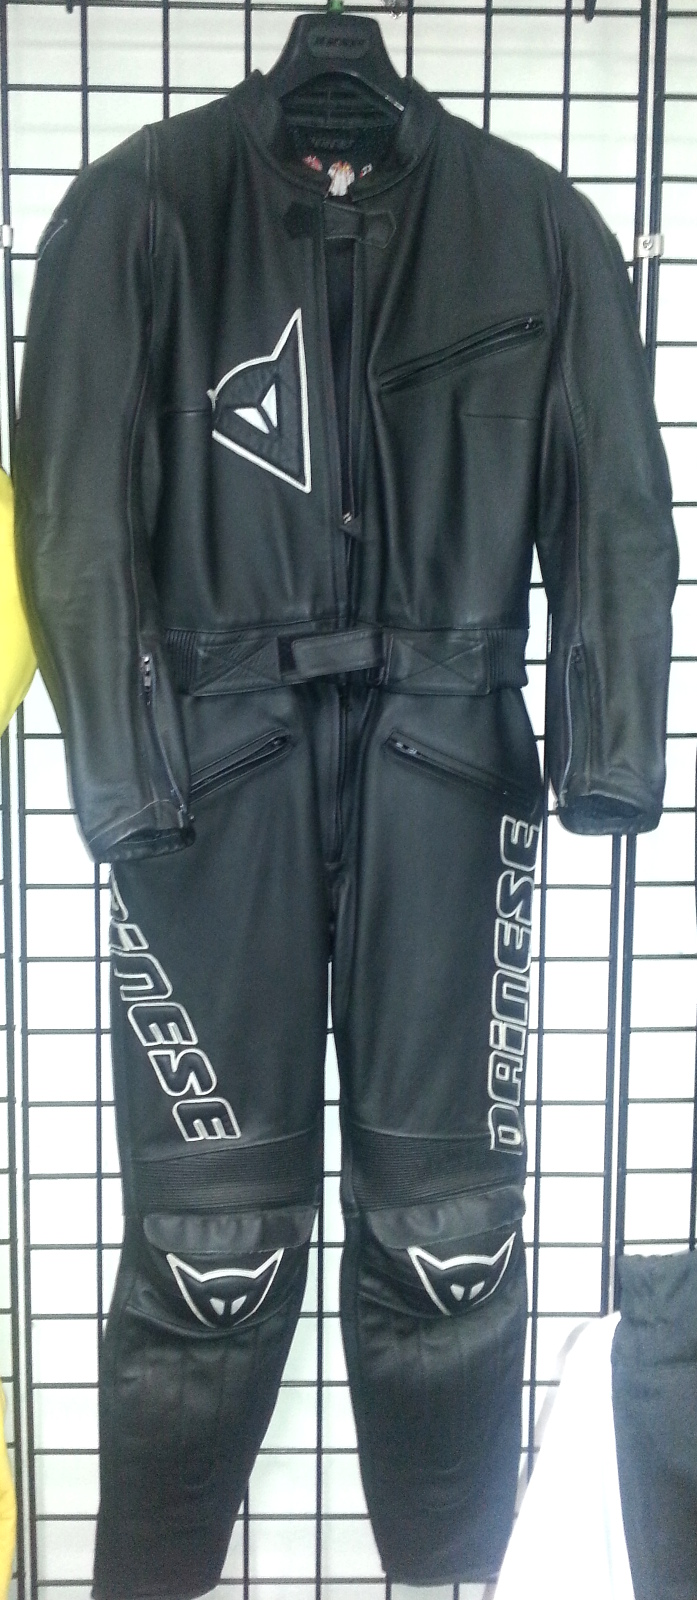 Dainese Luce Lady 2 piece leather motorcycle suit